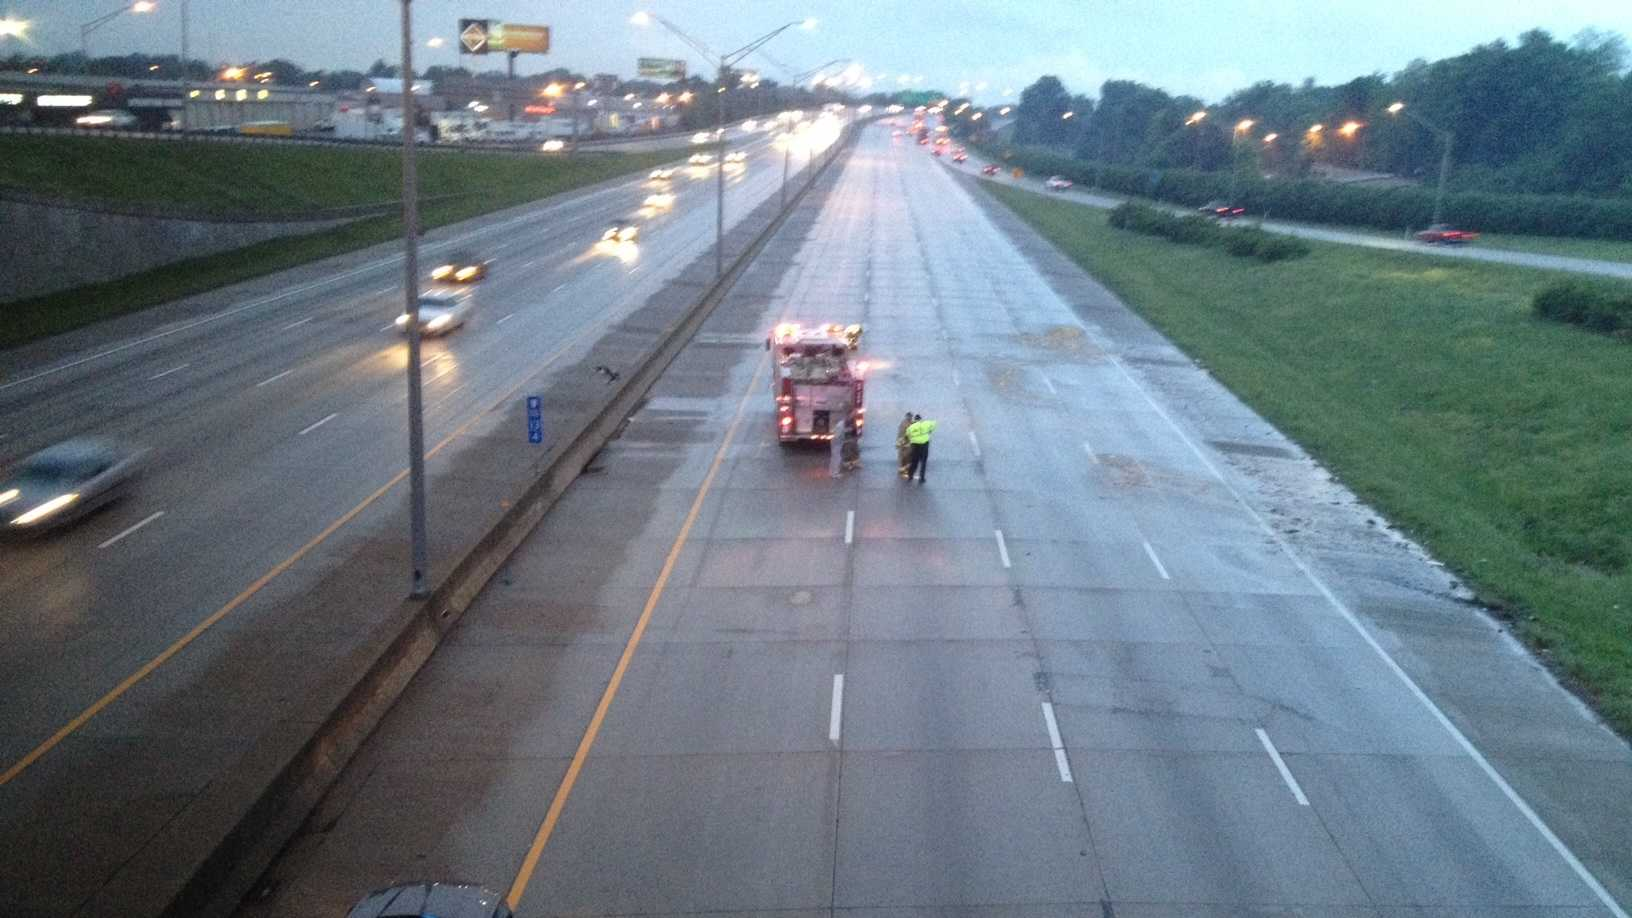 Watterson expressway cleared of vehicles